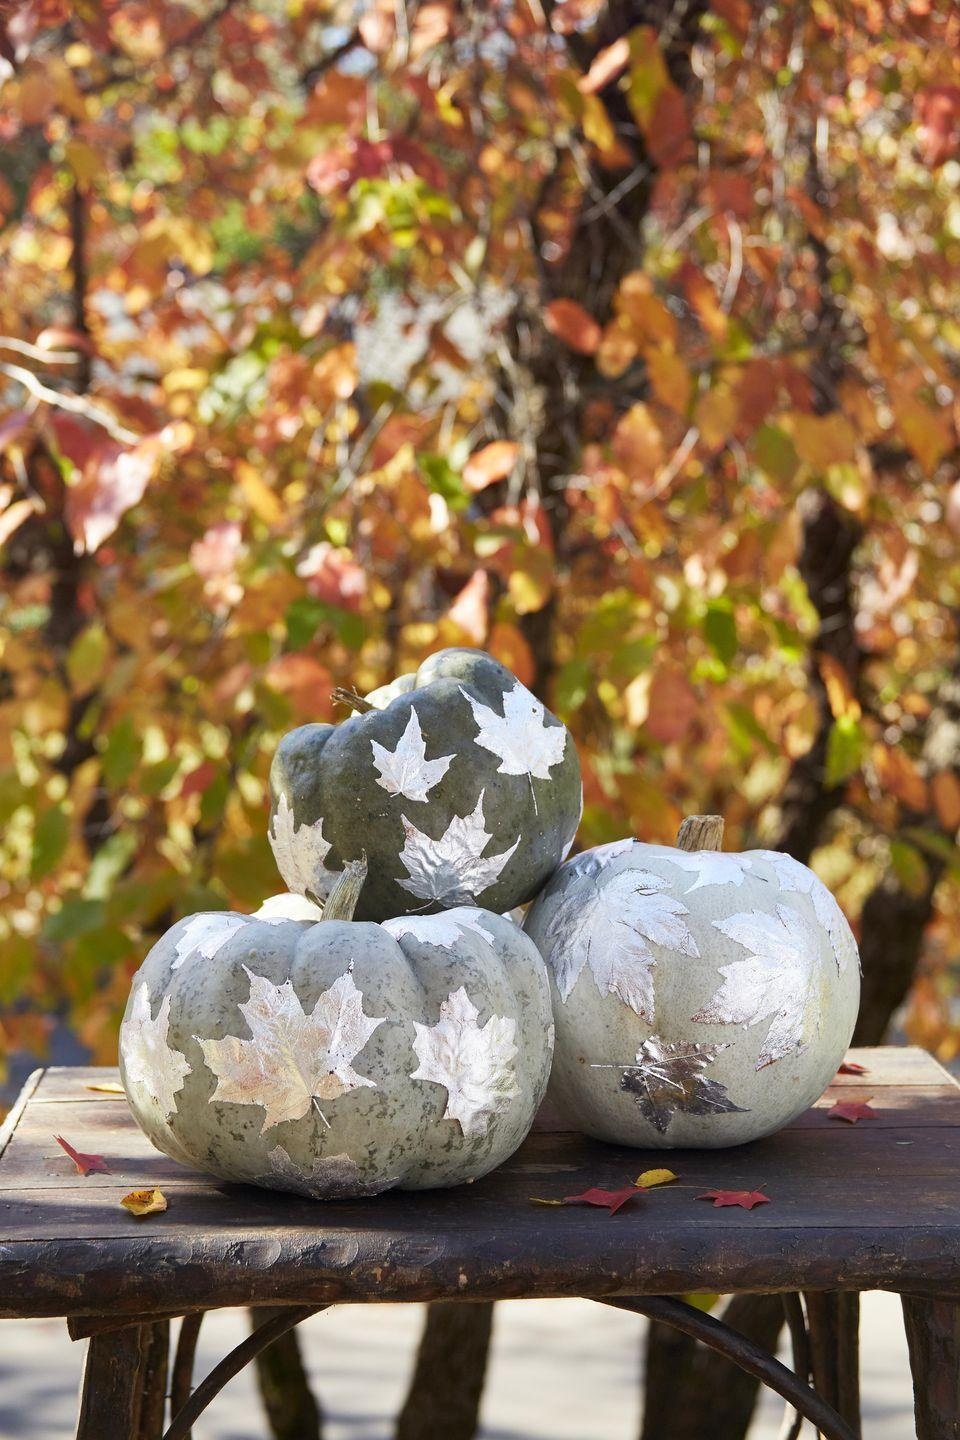 <p>These DIY shimmering leaves look great on blue-hued or green pumpkins such as Jarrahdale, Blue Doll, Blue Moon, and Fairytale.</p><p><strong>To make:</strong> Attach silver leaf with sizing to one side of fake or real leaves (alternatively, you can spray paint leaves silver). Once dry, spray adhesive spray on the back of the leaves and attach to pumpkins.</p>